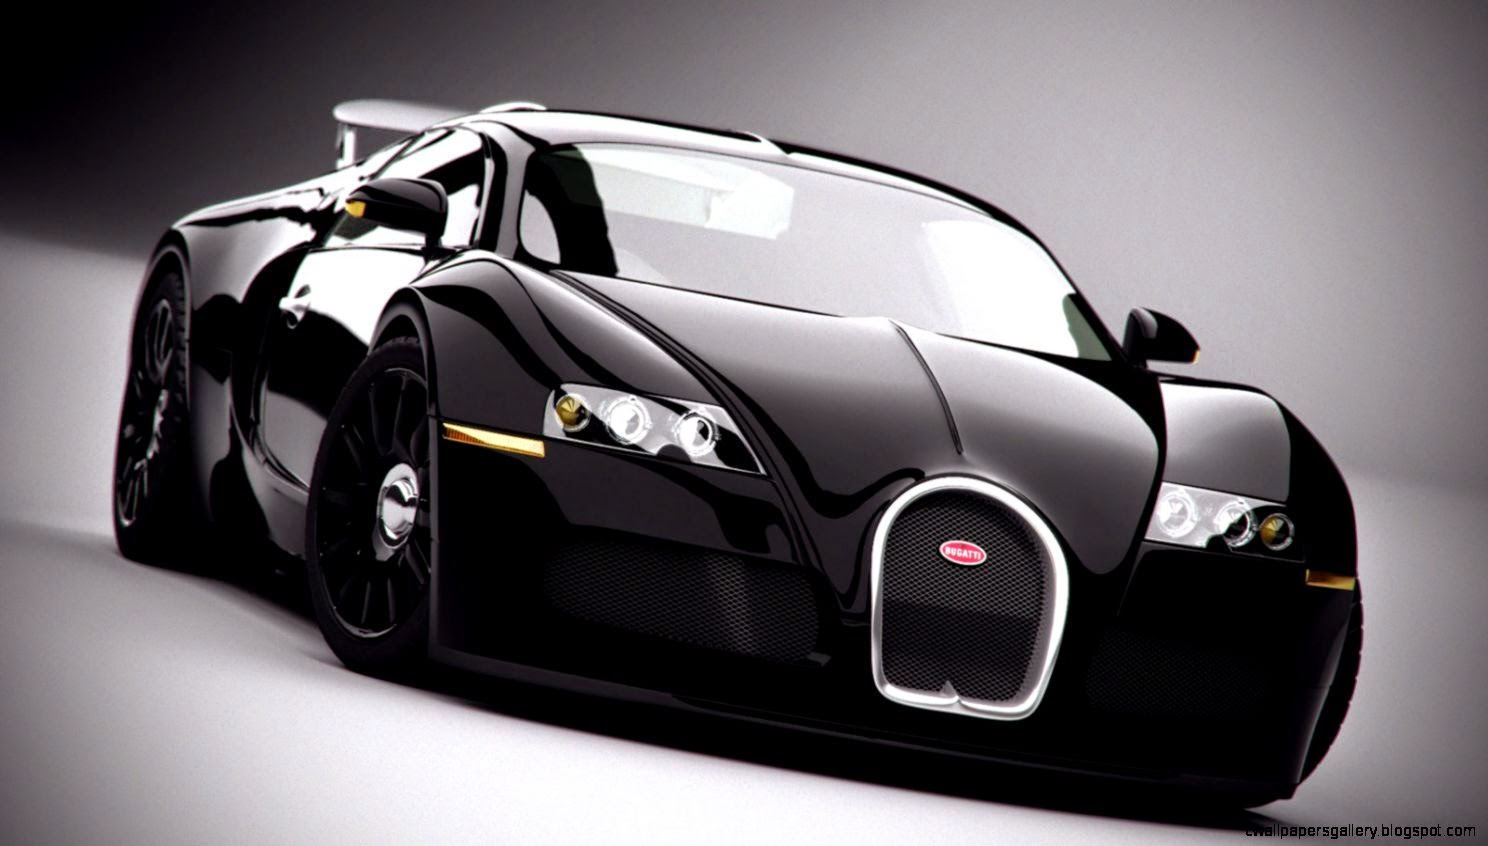 View Original Size. Bugatti Veyron Super Sport White And Black Car Images